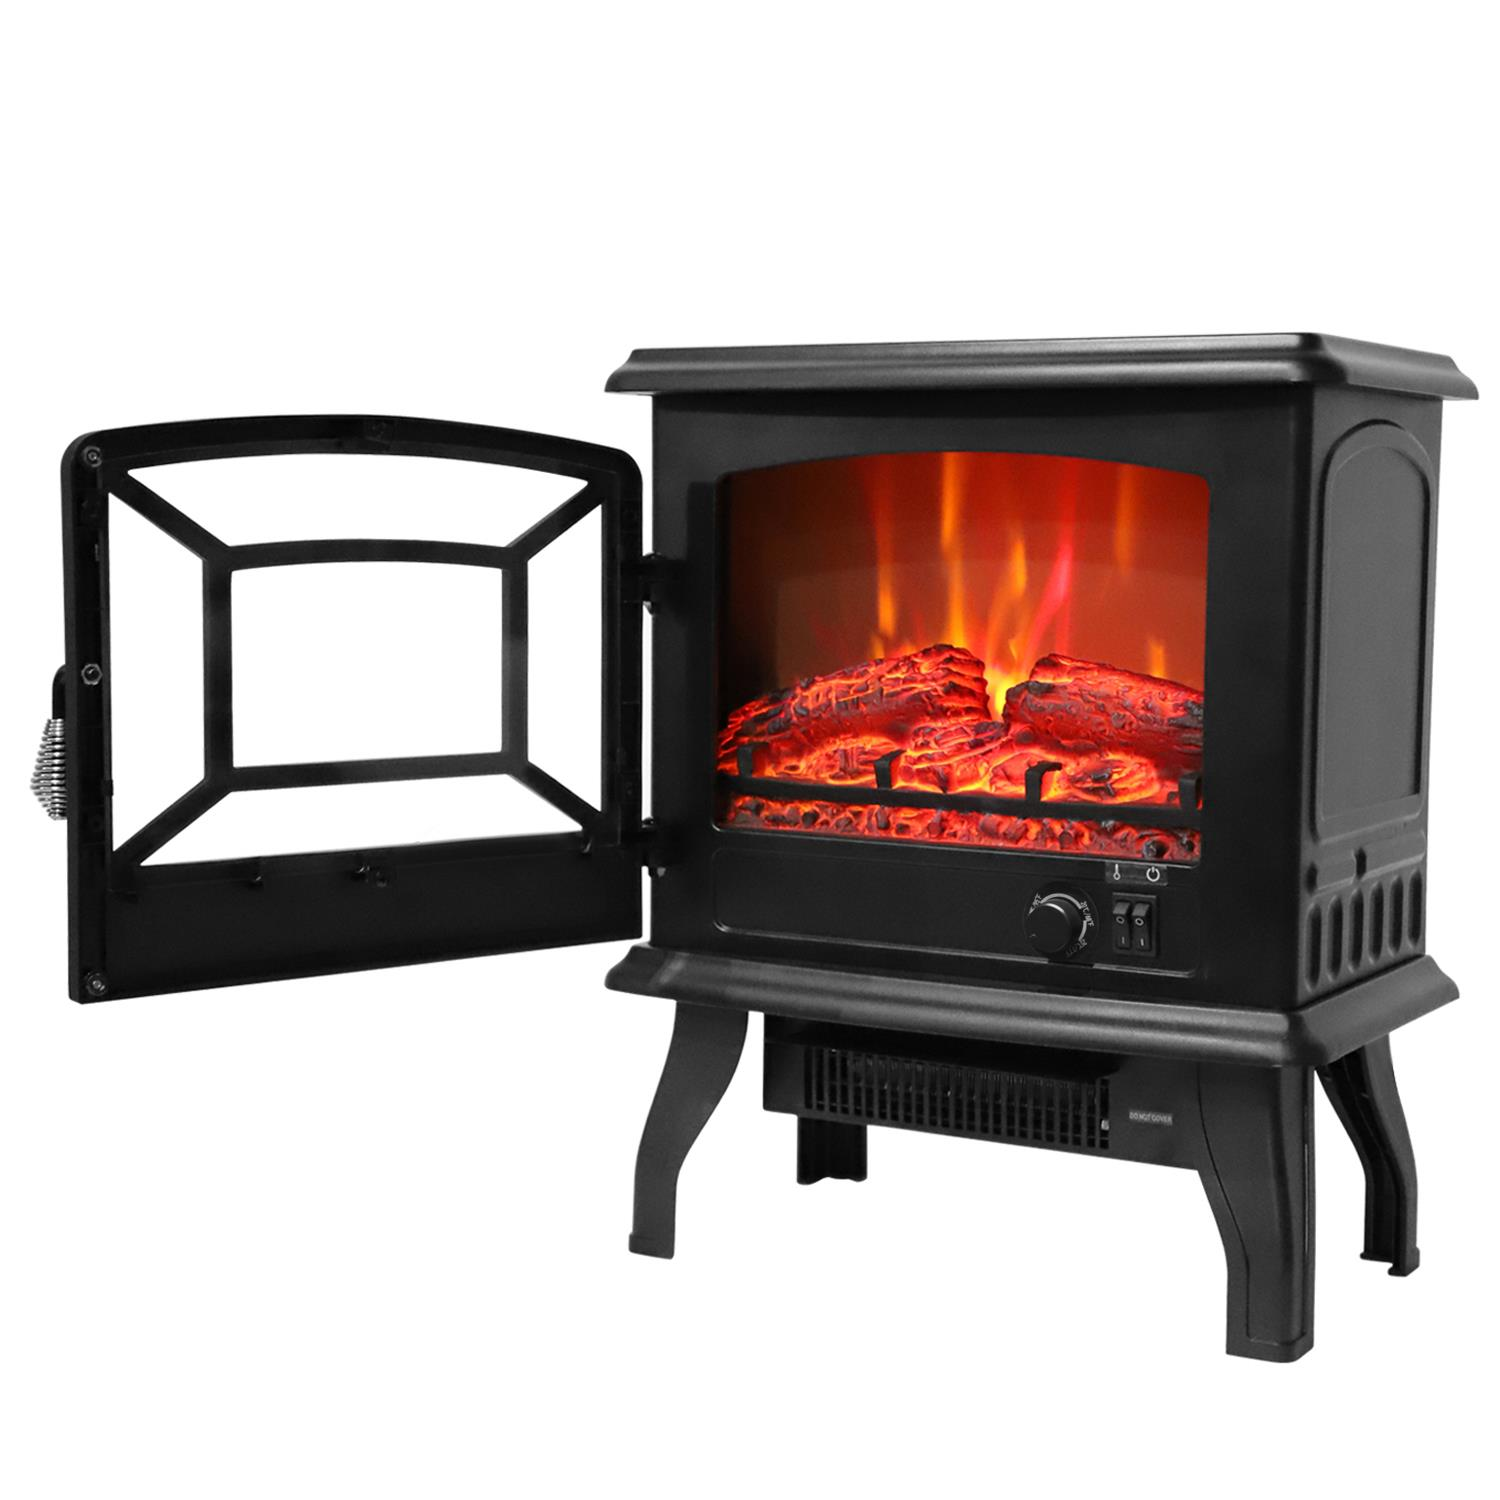 Ktaxon 17 Small Electric Fireplace Indoor Free Standing Heater Fire Flame Stove Adjustable Csa Listed Walmart Com Walmart Com